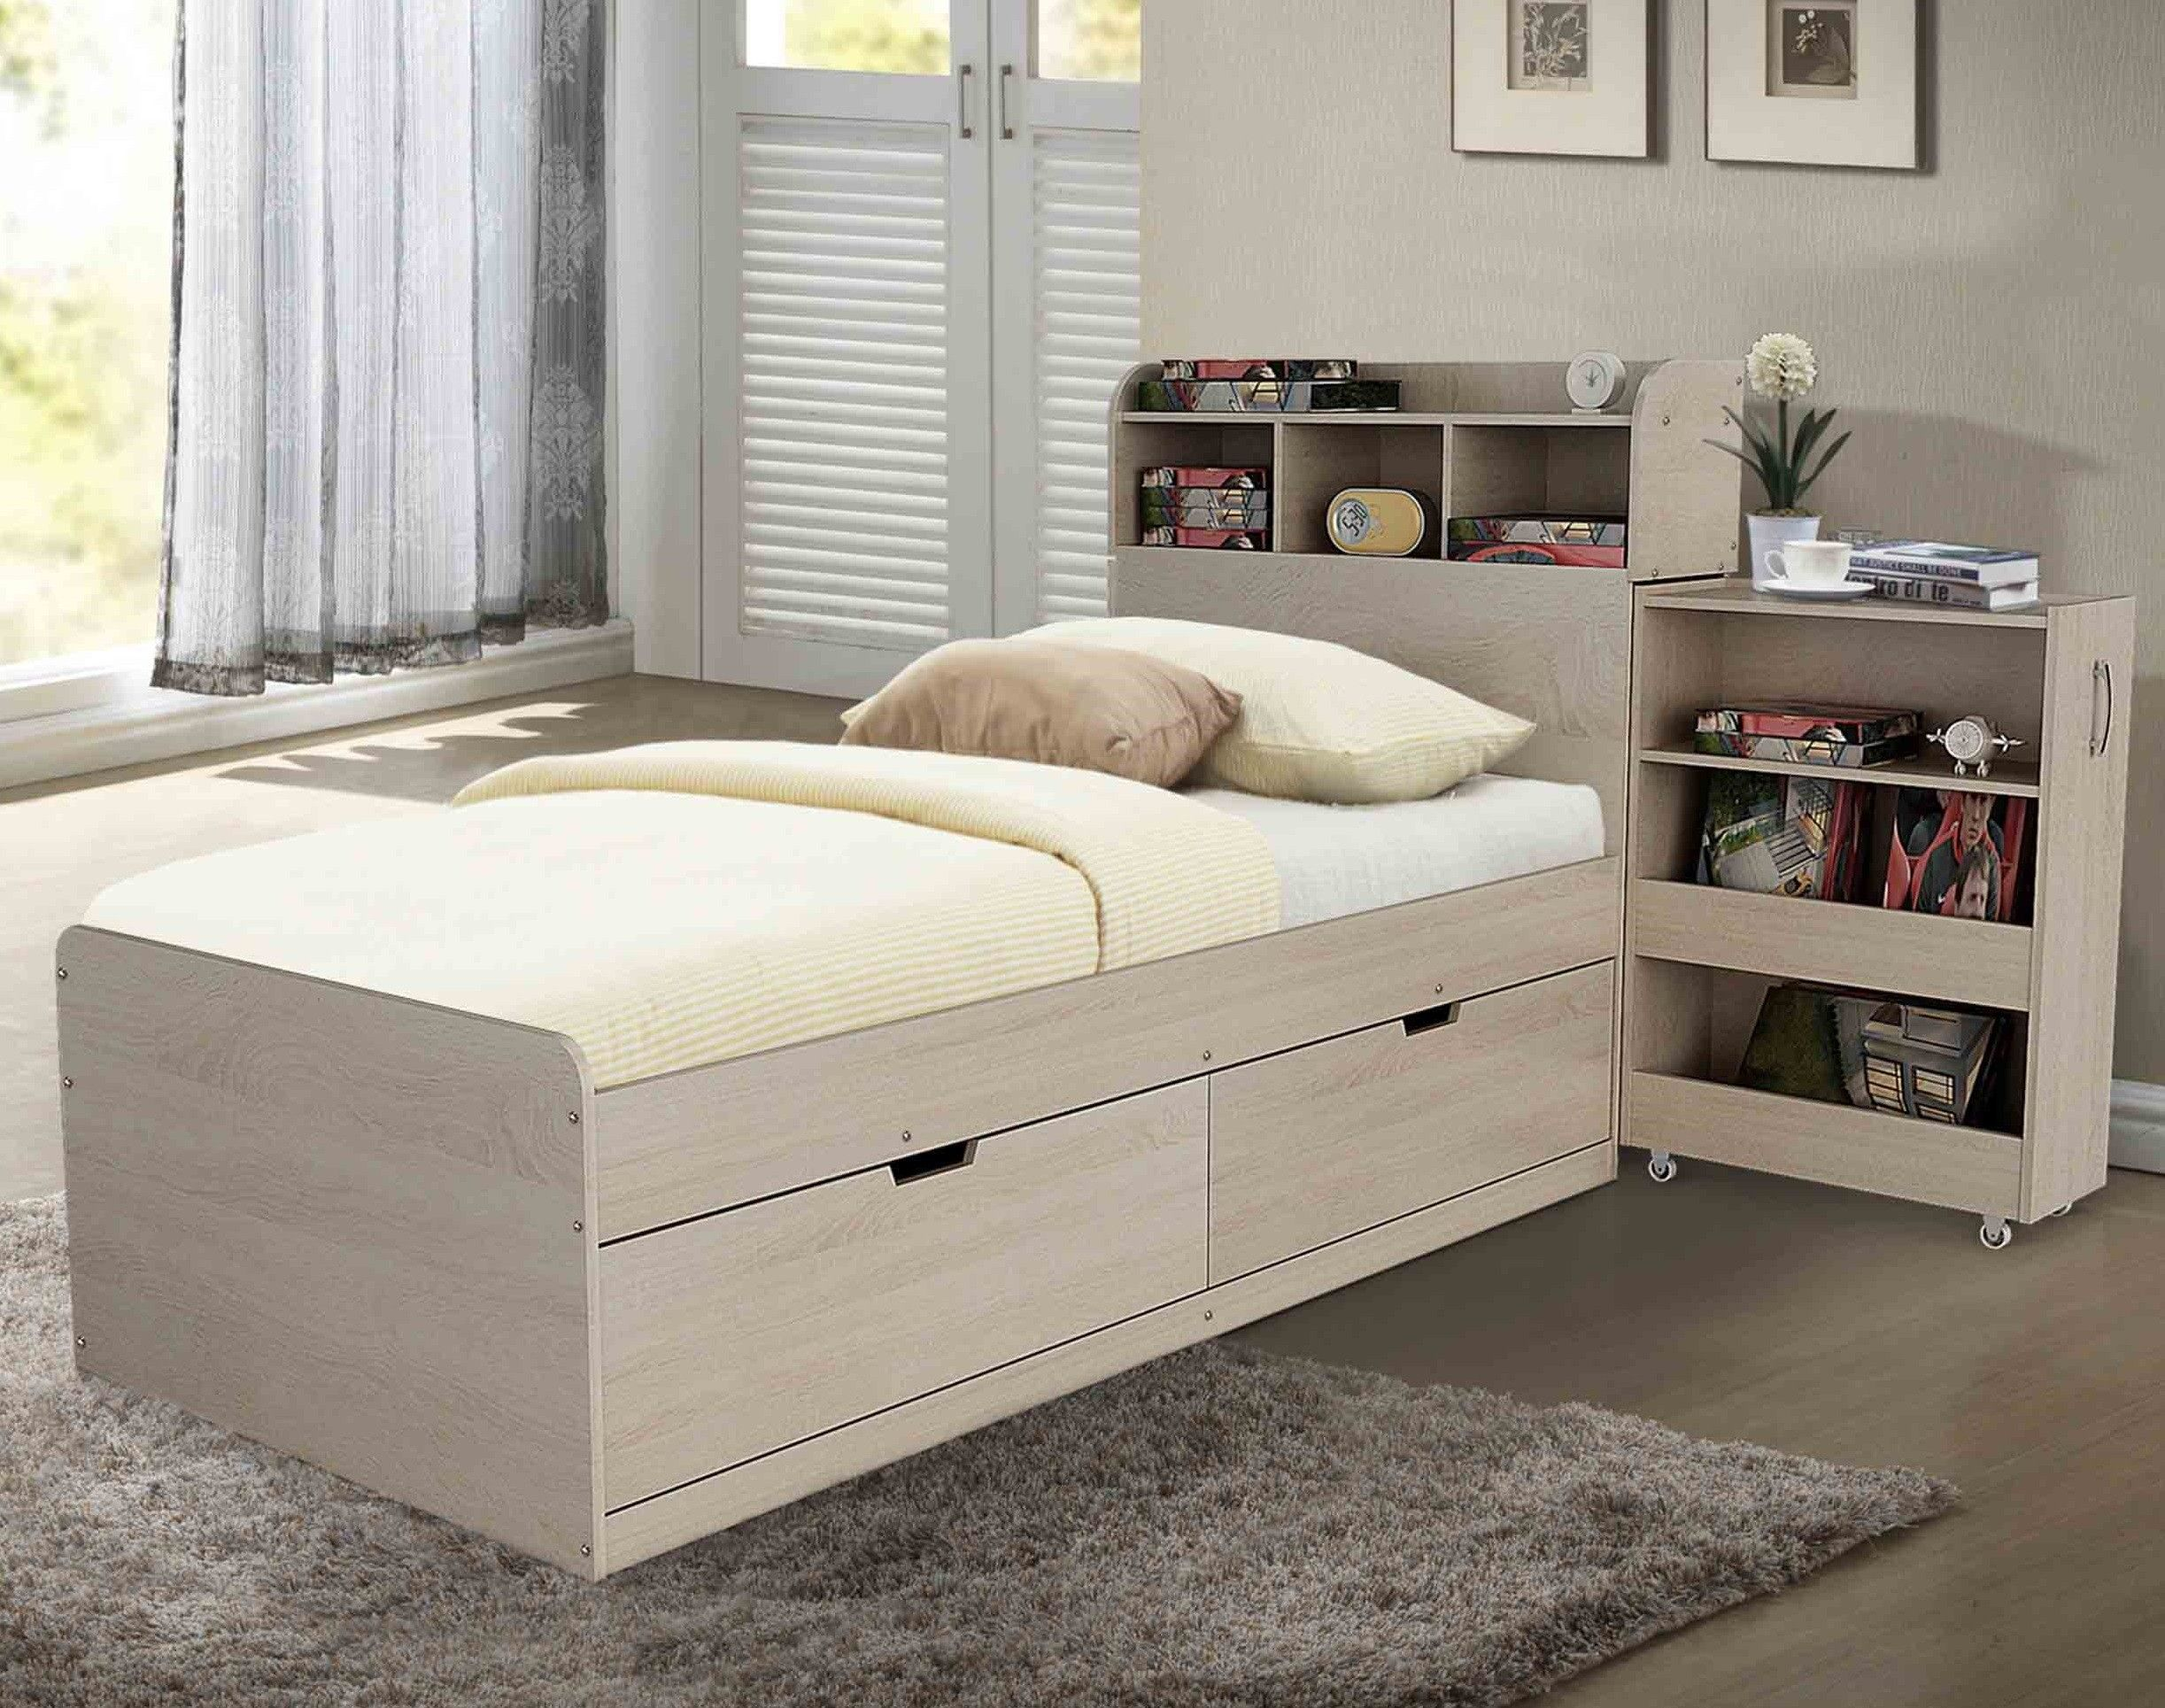 Airlie Single Bed In Light Oak With Cabinet And 2 Drawers Bed